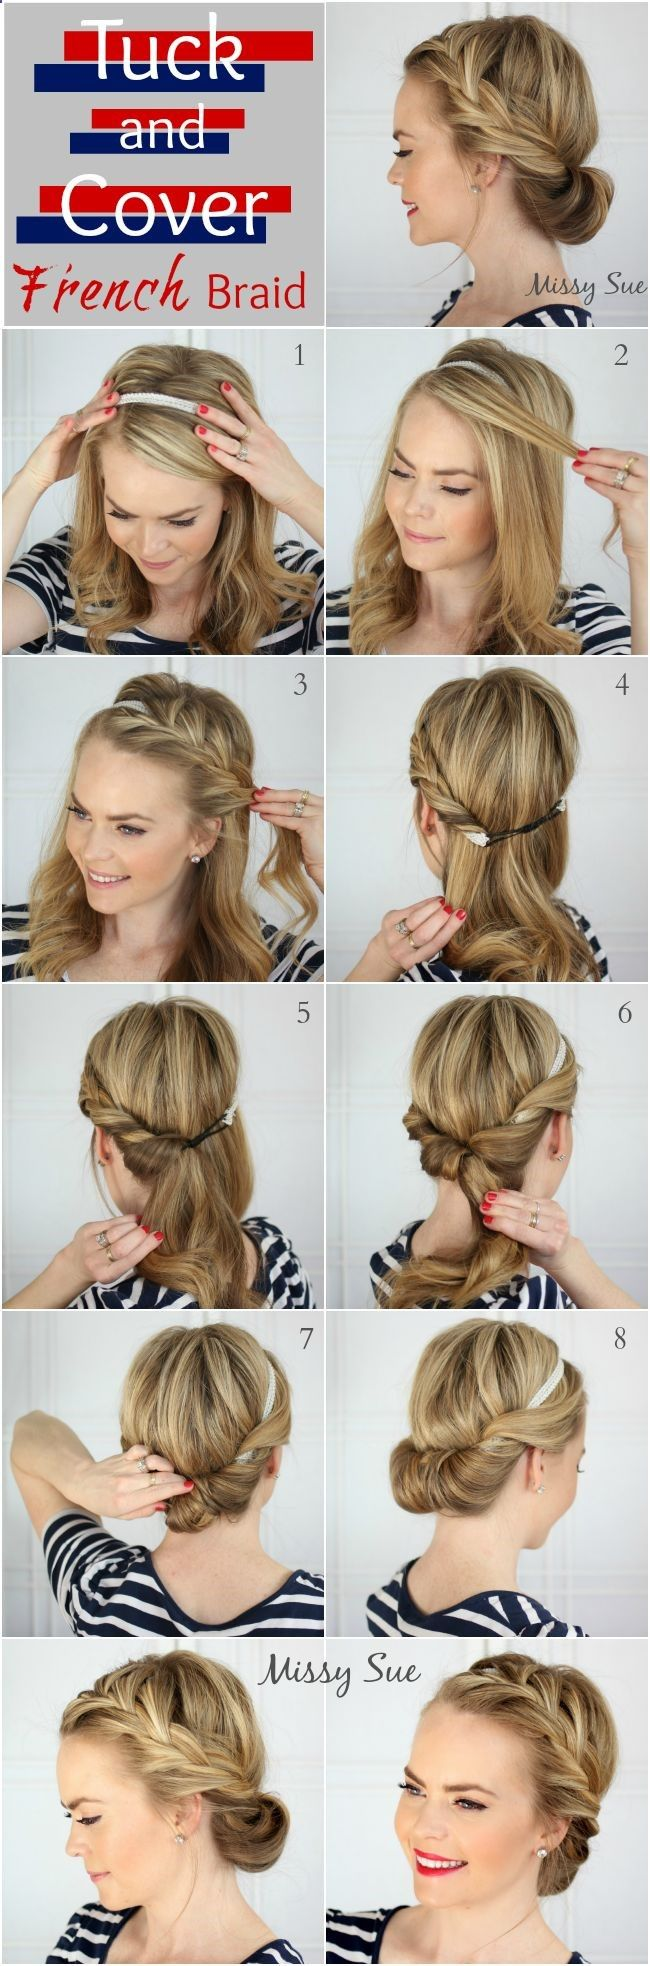 cute summer hair.